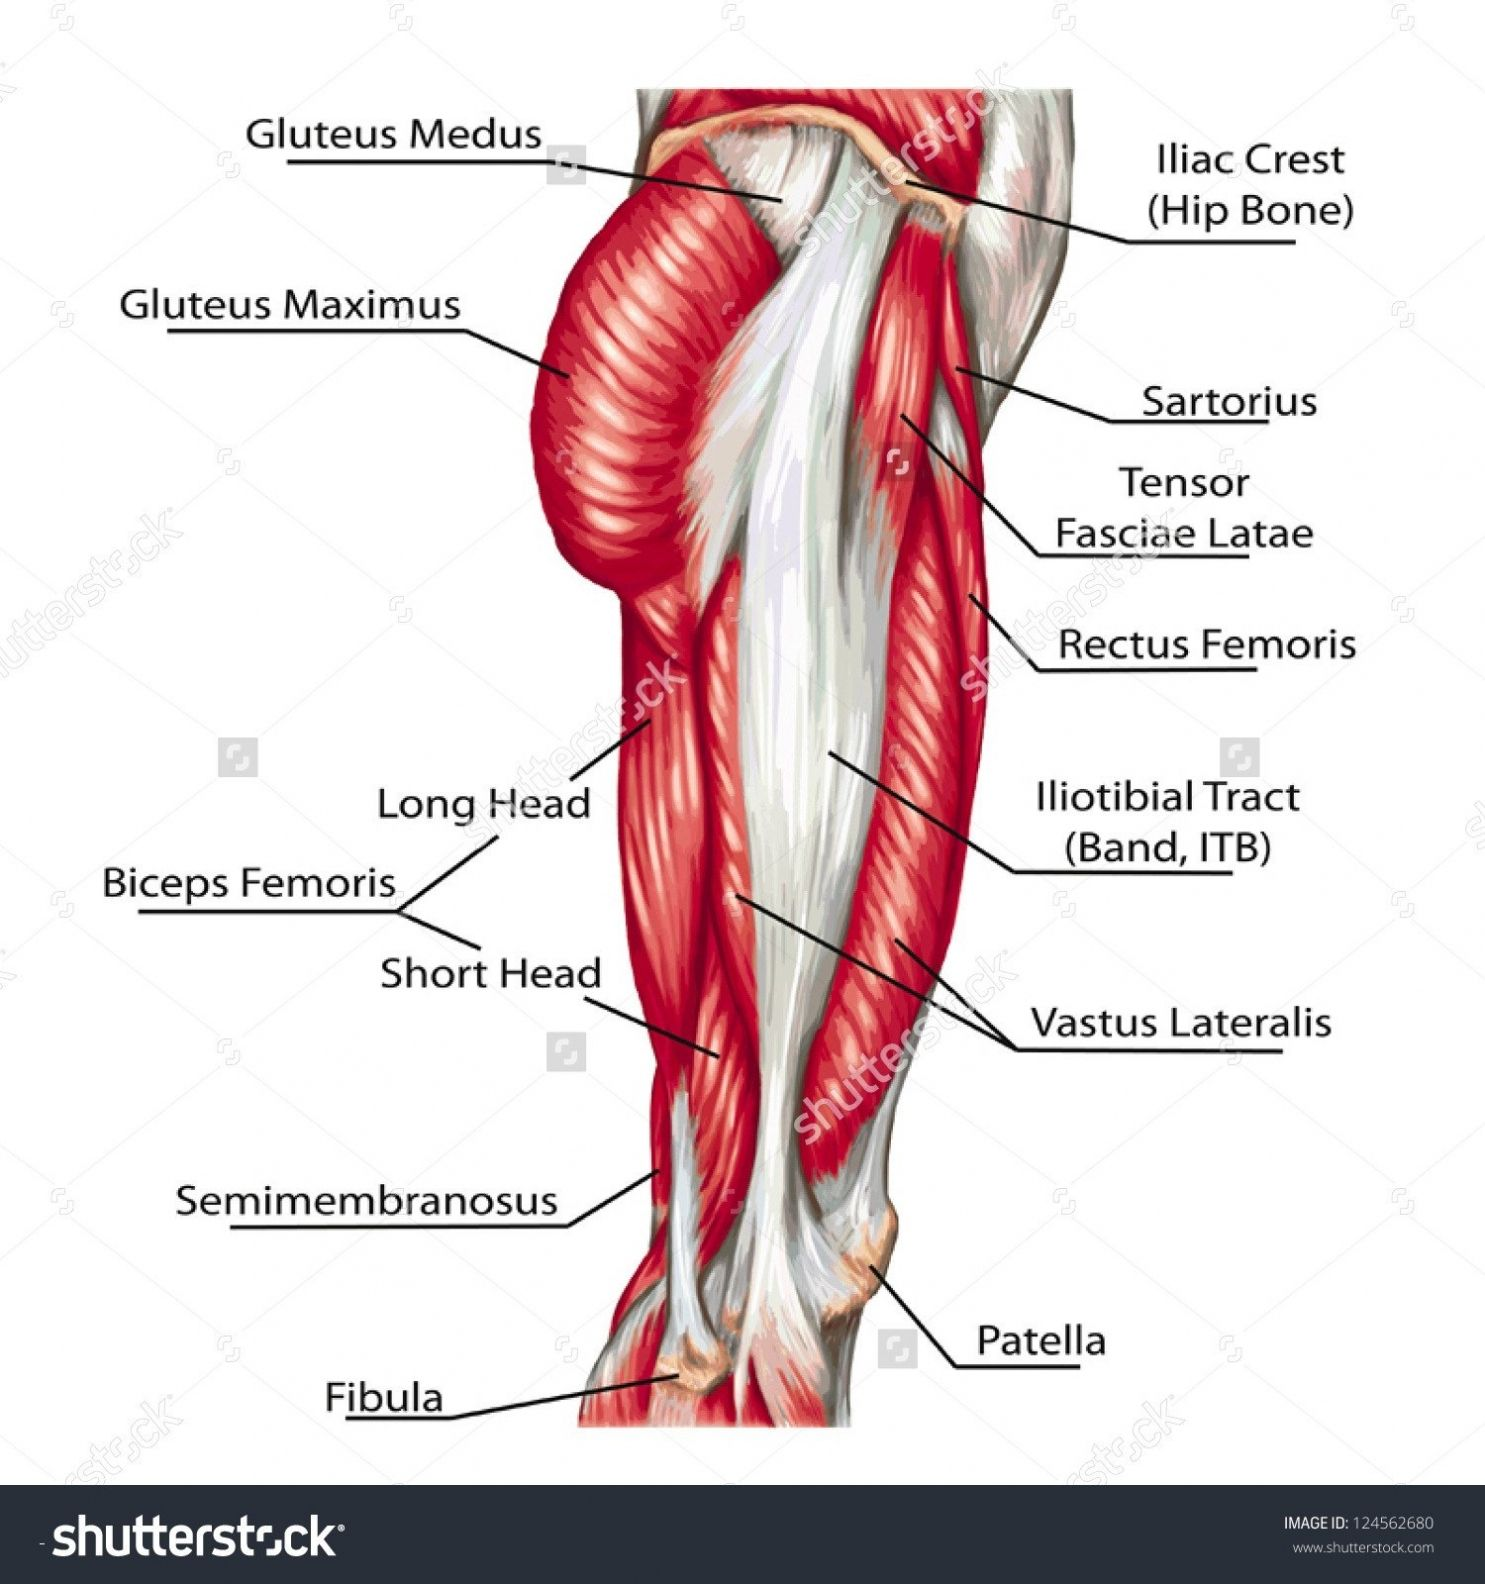 Muscles Of The Body Diagram For Kids Human Anatomy Drawing